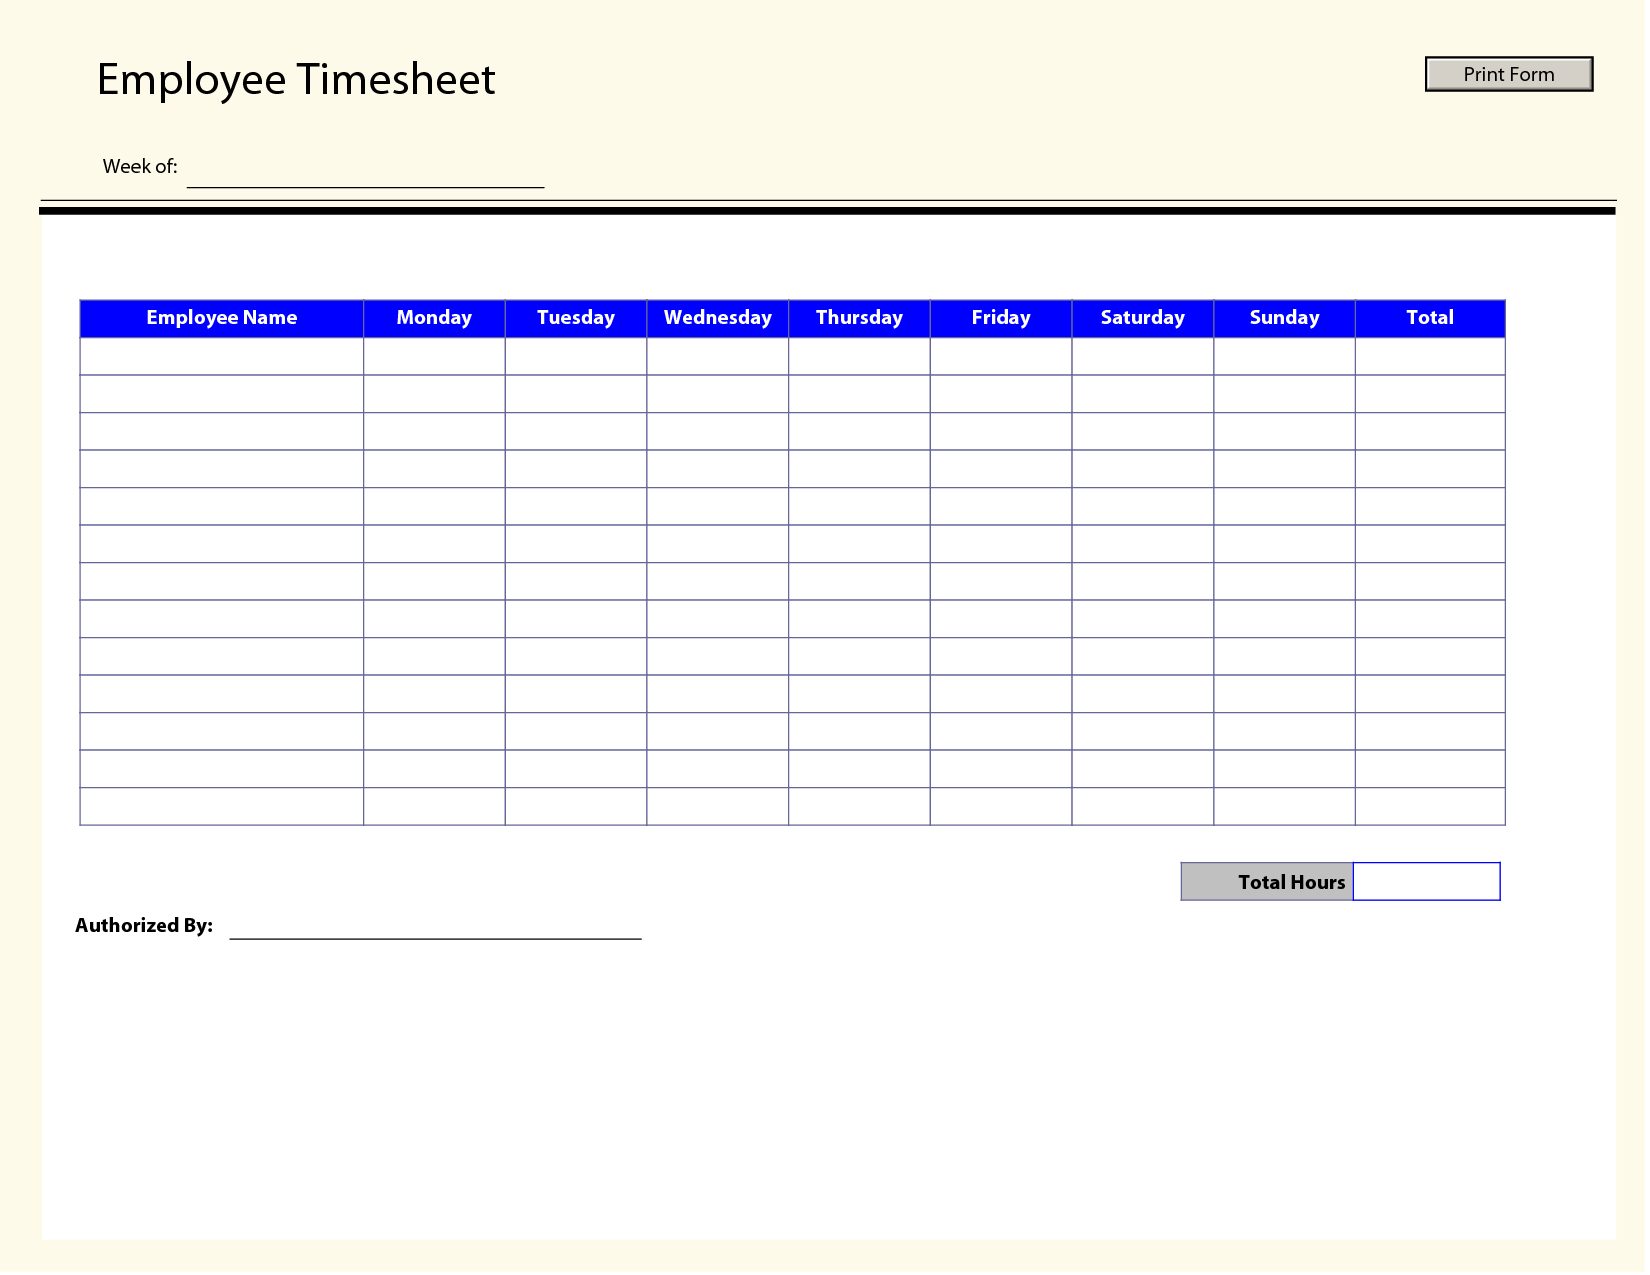 Blank Employee Timesheet Template | Management Templates | Timesheet - Time Card Templates Free Printable